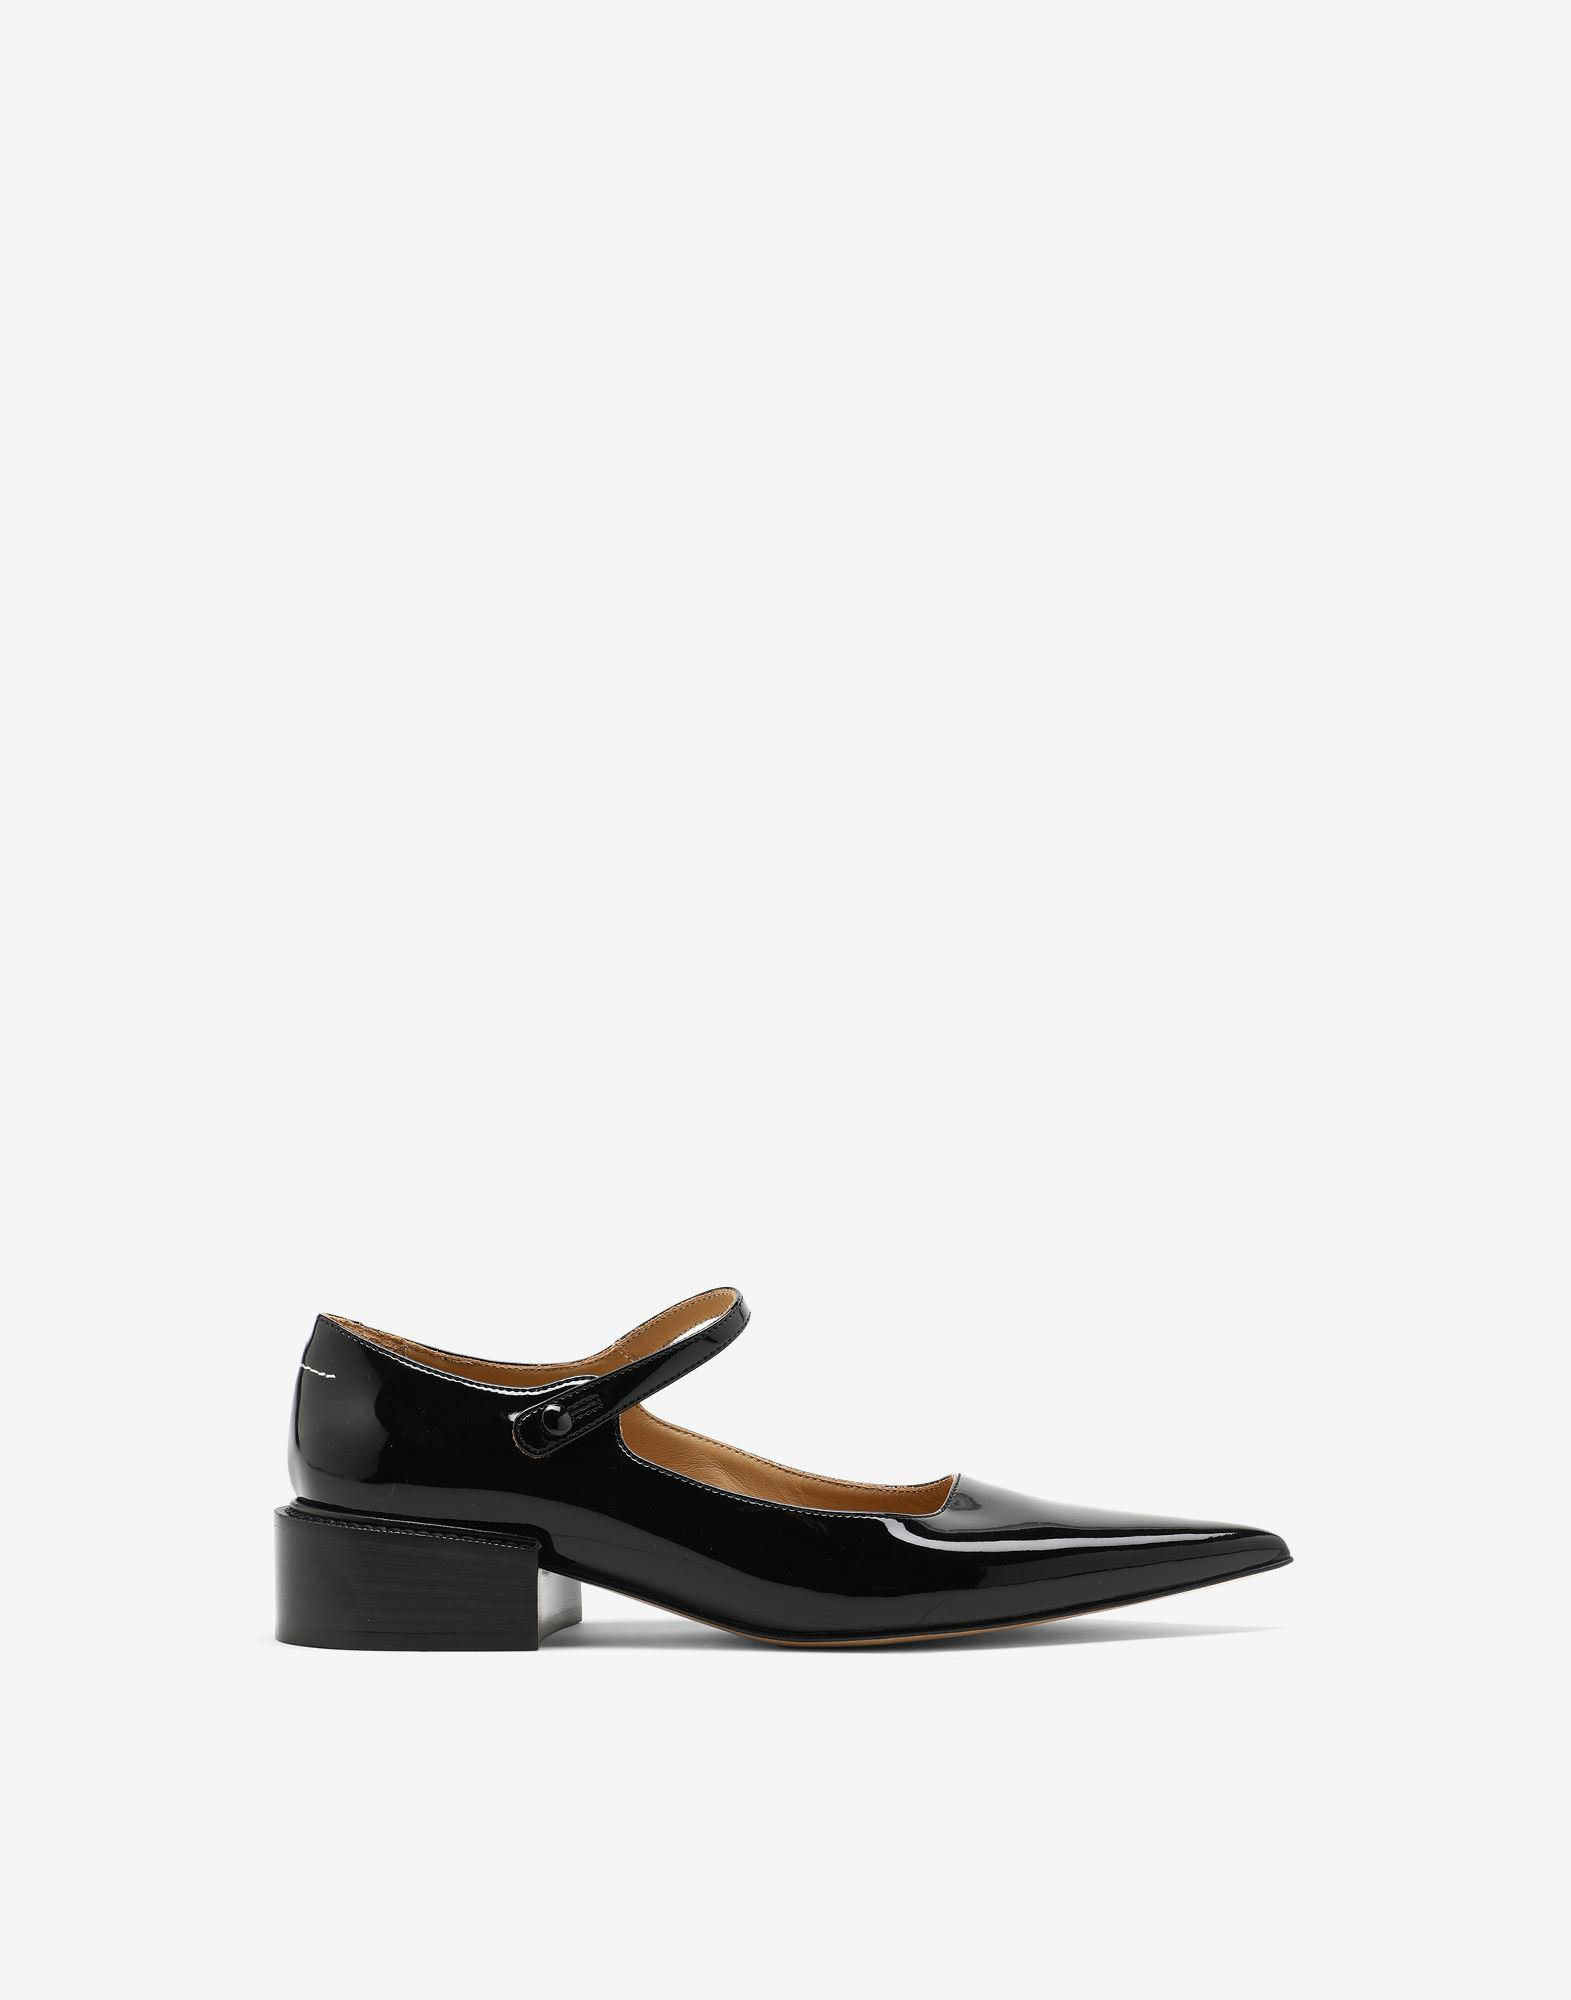 Patent Mary-Jane shoes